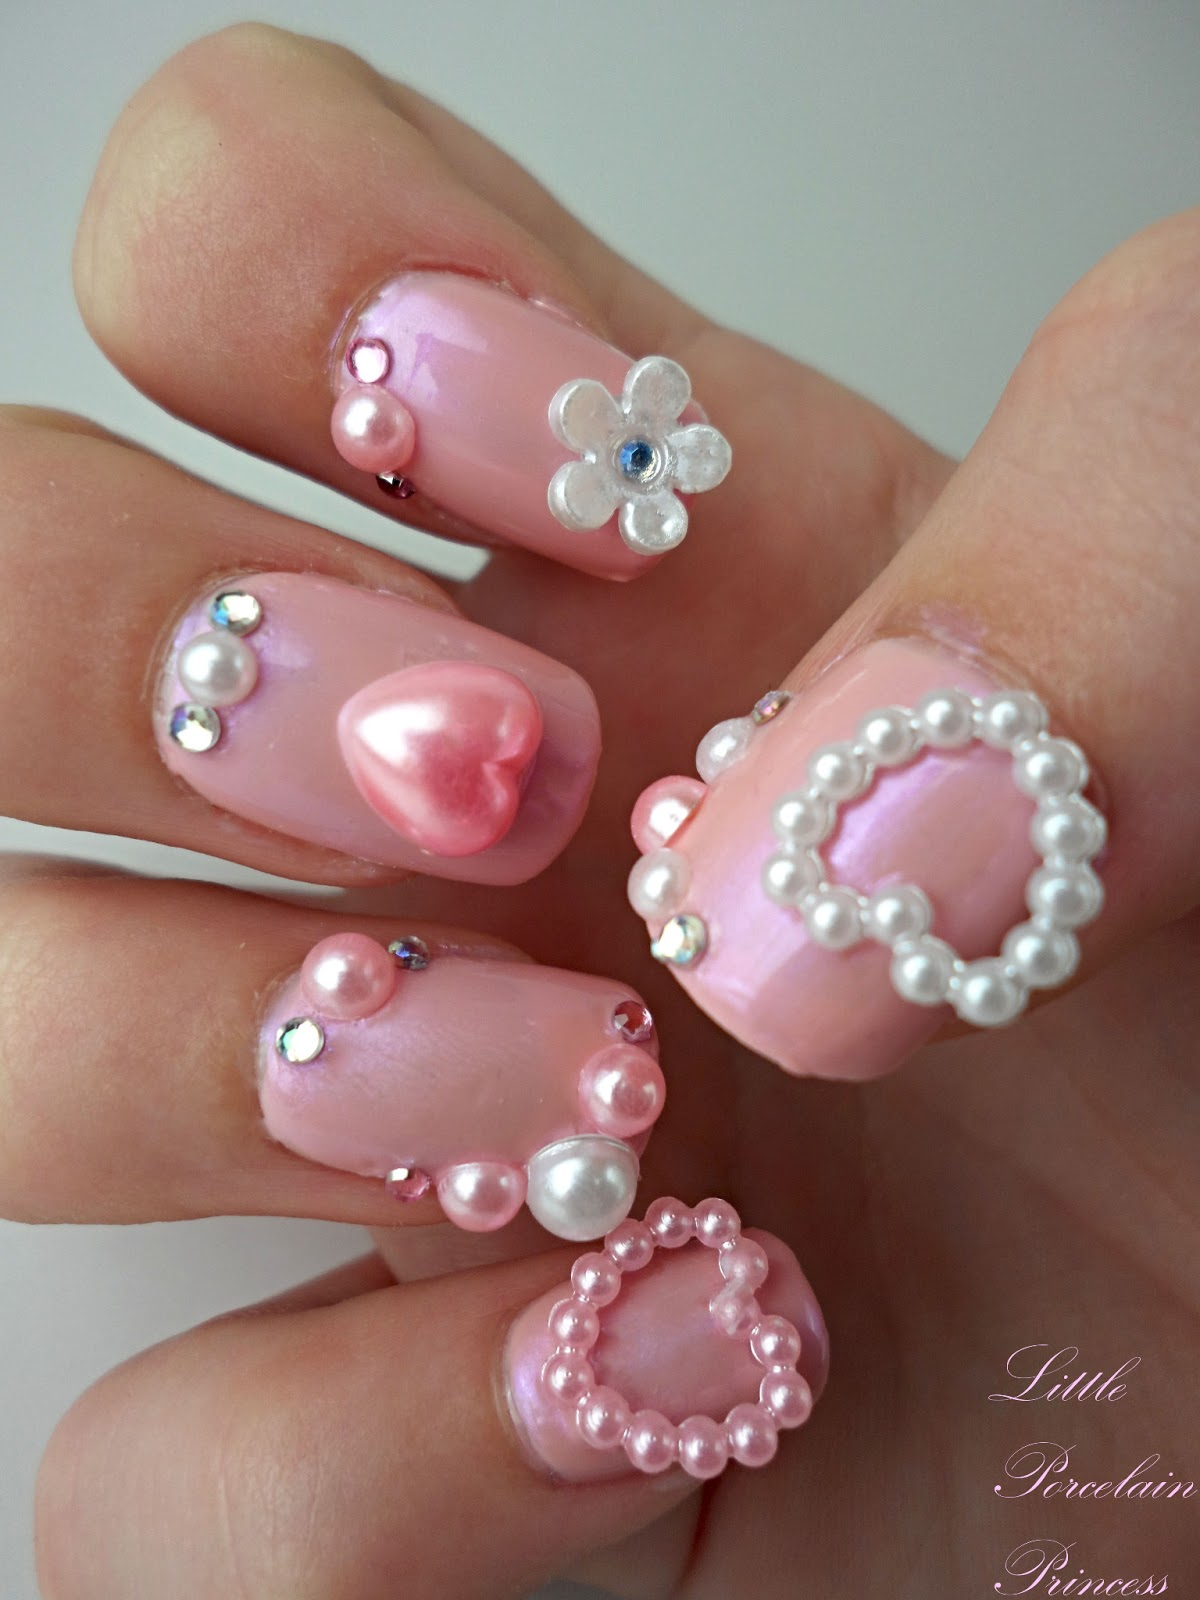 Little Porcelain Princess: Manicure Monday: Japanese 3D Nails